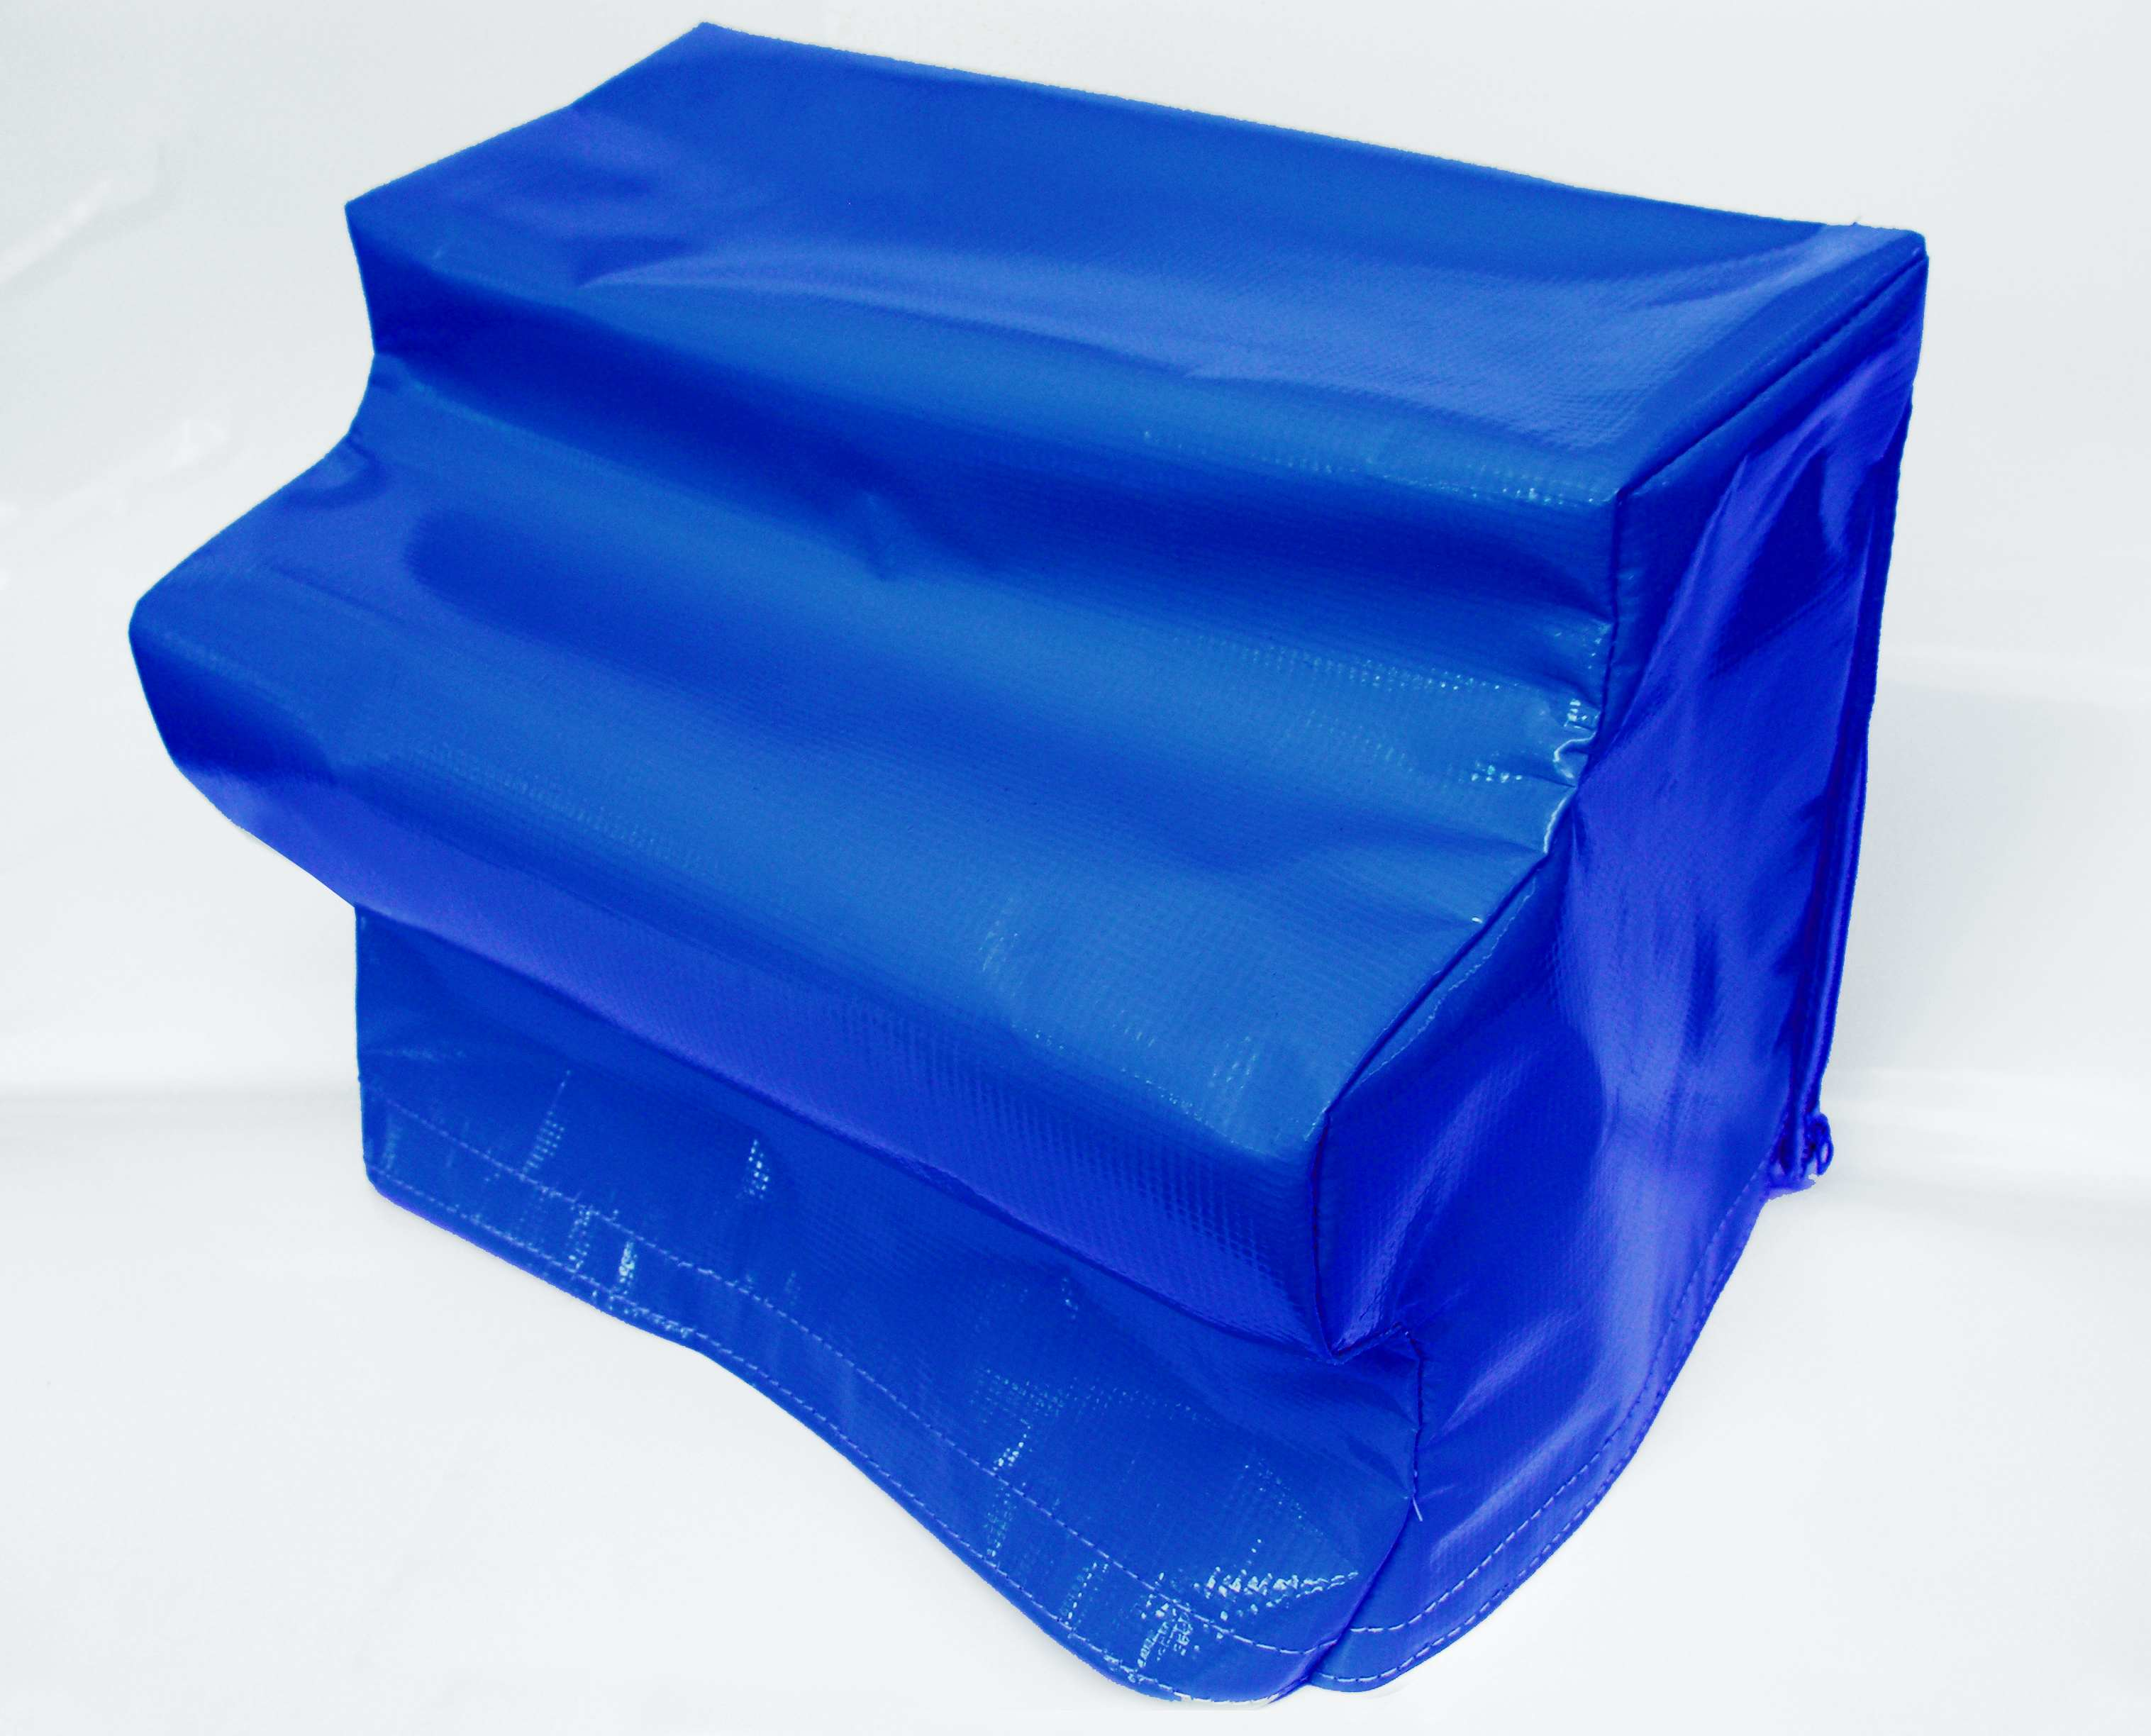 VINYL COATED NYLON EQUIPMENT COVERS Custom Sizes